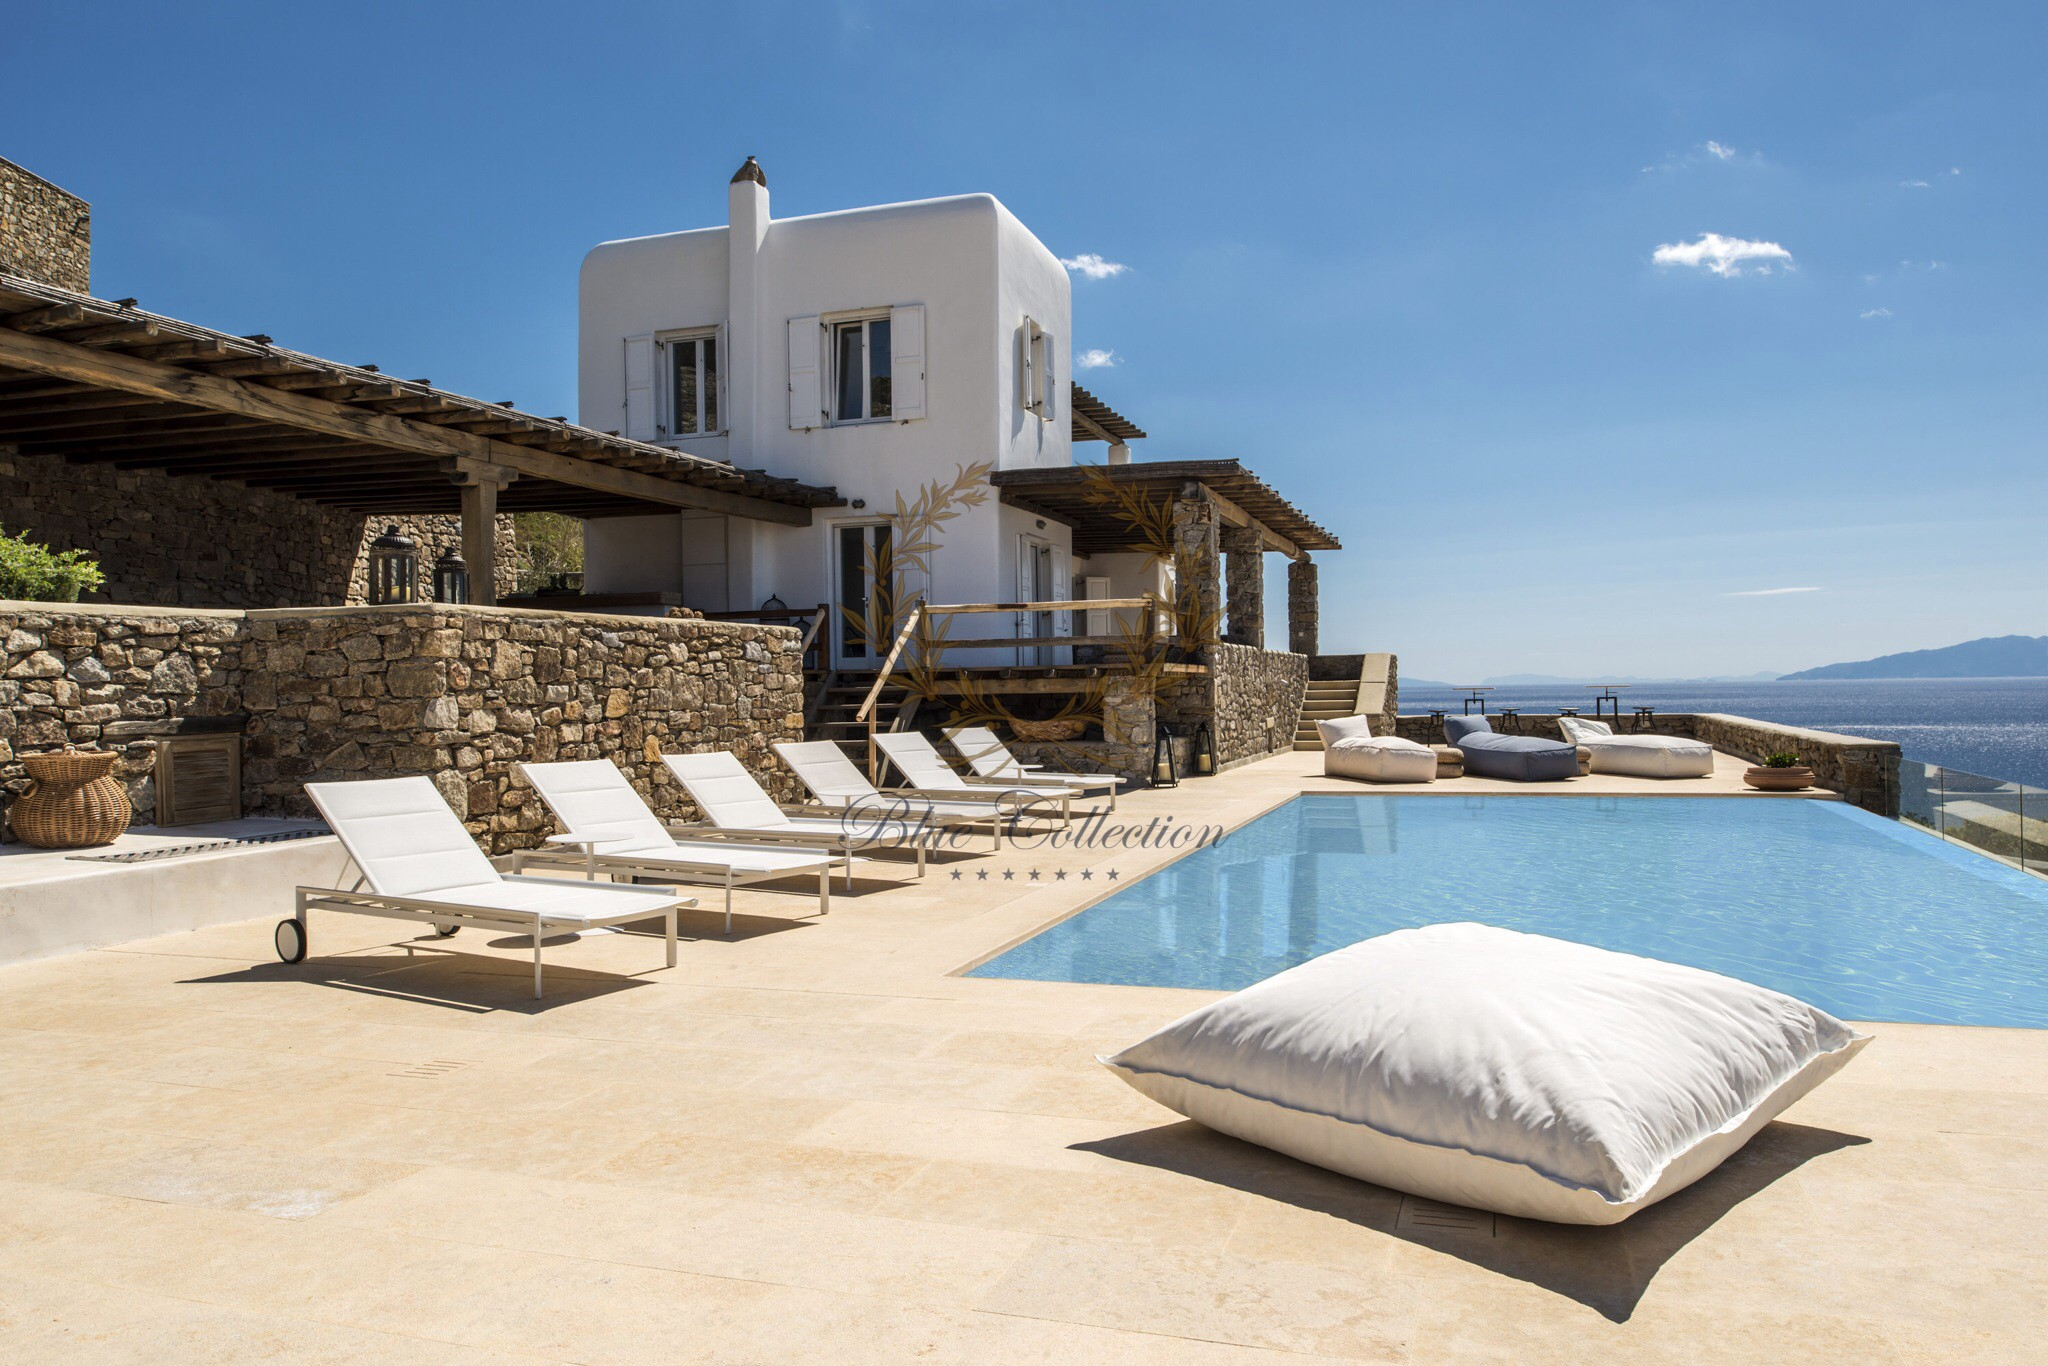 Best Island Beaches For Partying Mykonos St Barts: St. John – Executive Villa With Private Pool